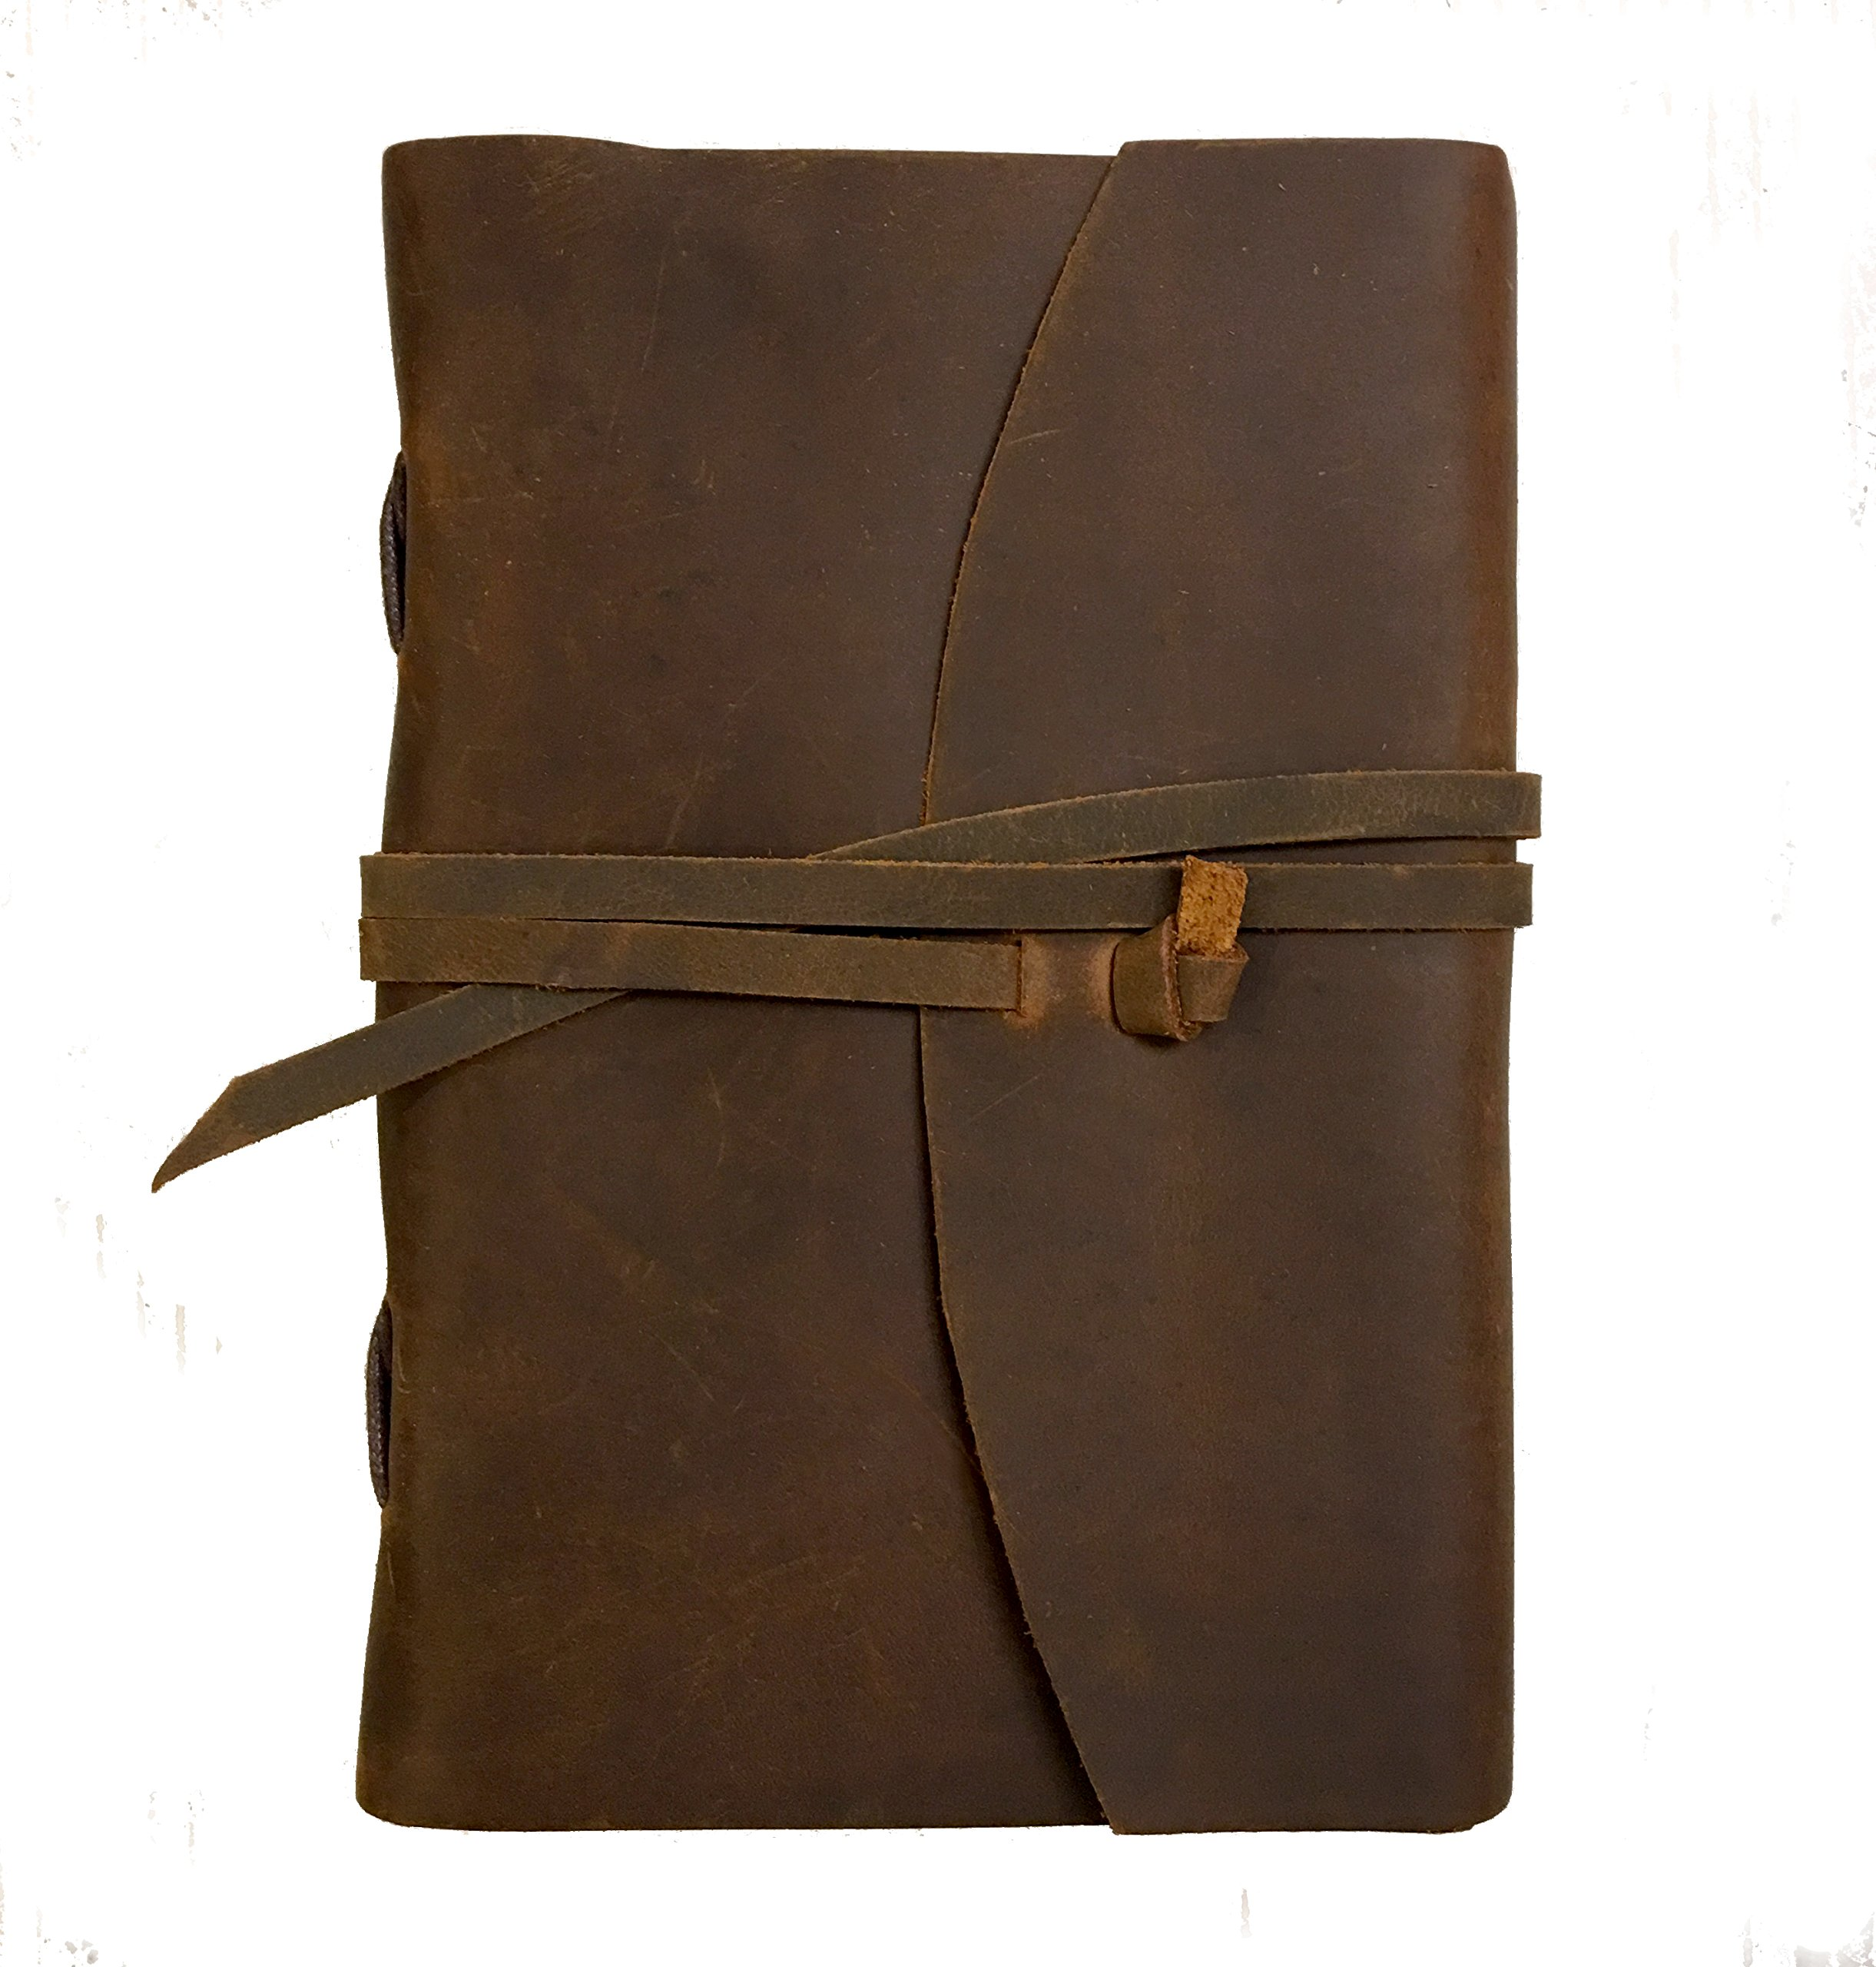 Handmade Crazy Horse Leather Journal – Vintage Style – Rustic, Unique Color & Texture – 8.75 x 6.25 inches - 320 Pages – Great Organizer, Diary or Journal – Blank, Cream Colored Paper